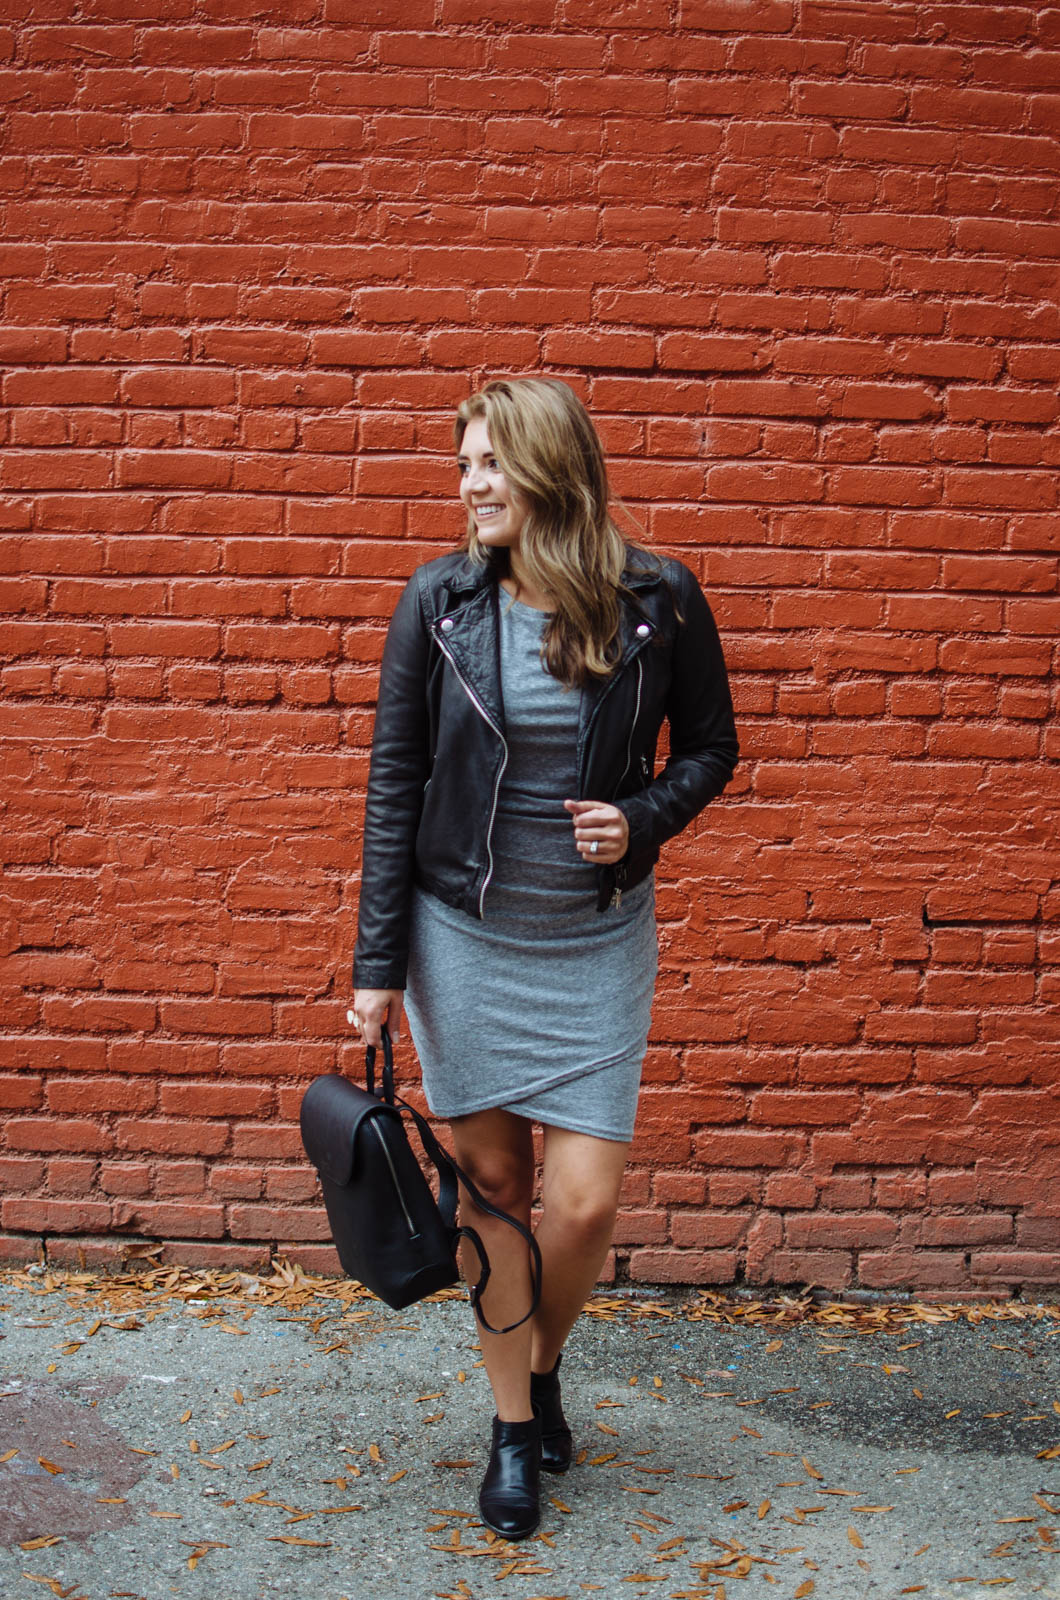 ruched dress date night outfit - two ways to wear a ruched dress | Click through to see how to wear this dress casually! bylaurenm.com